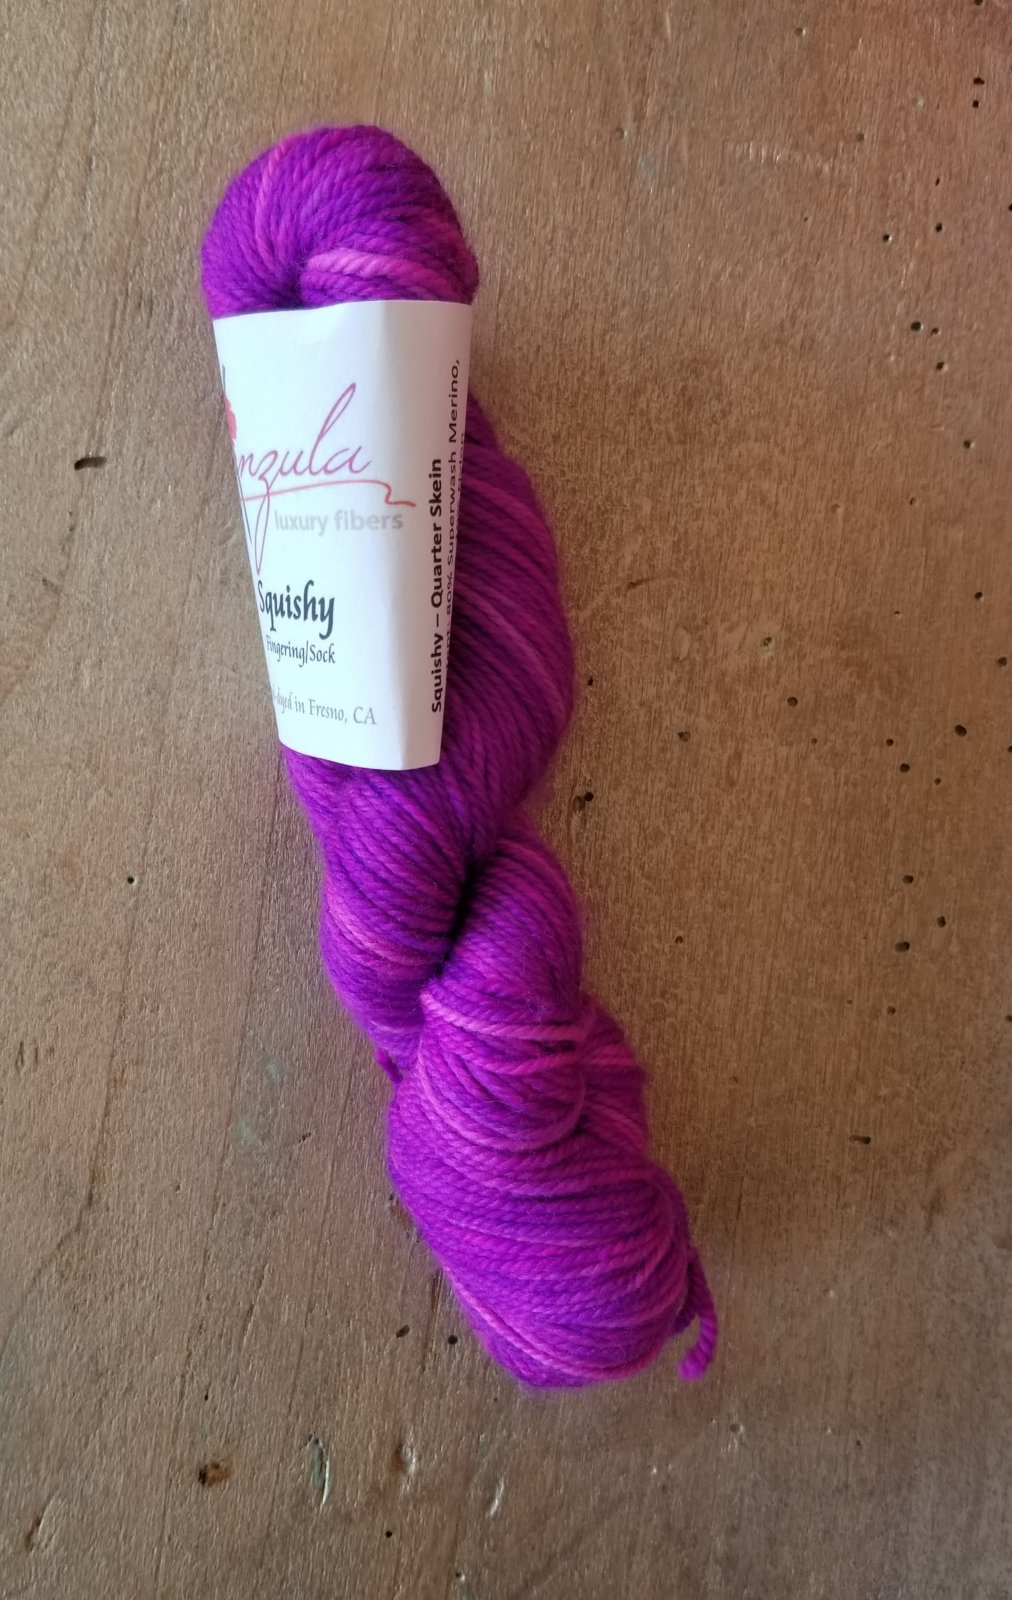 Misfit Squishy 25g by Anzula Fingering/Sock Weight